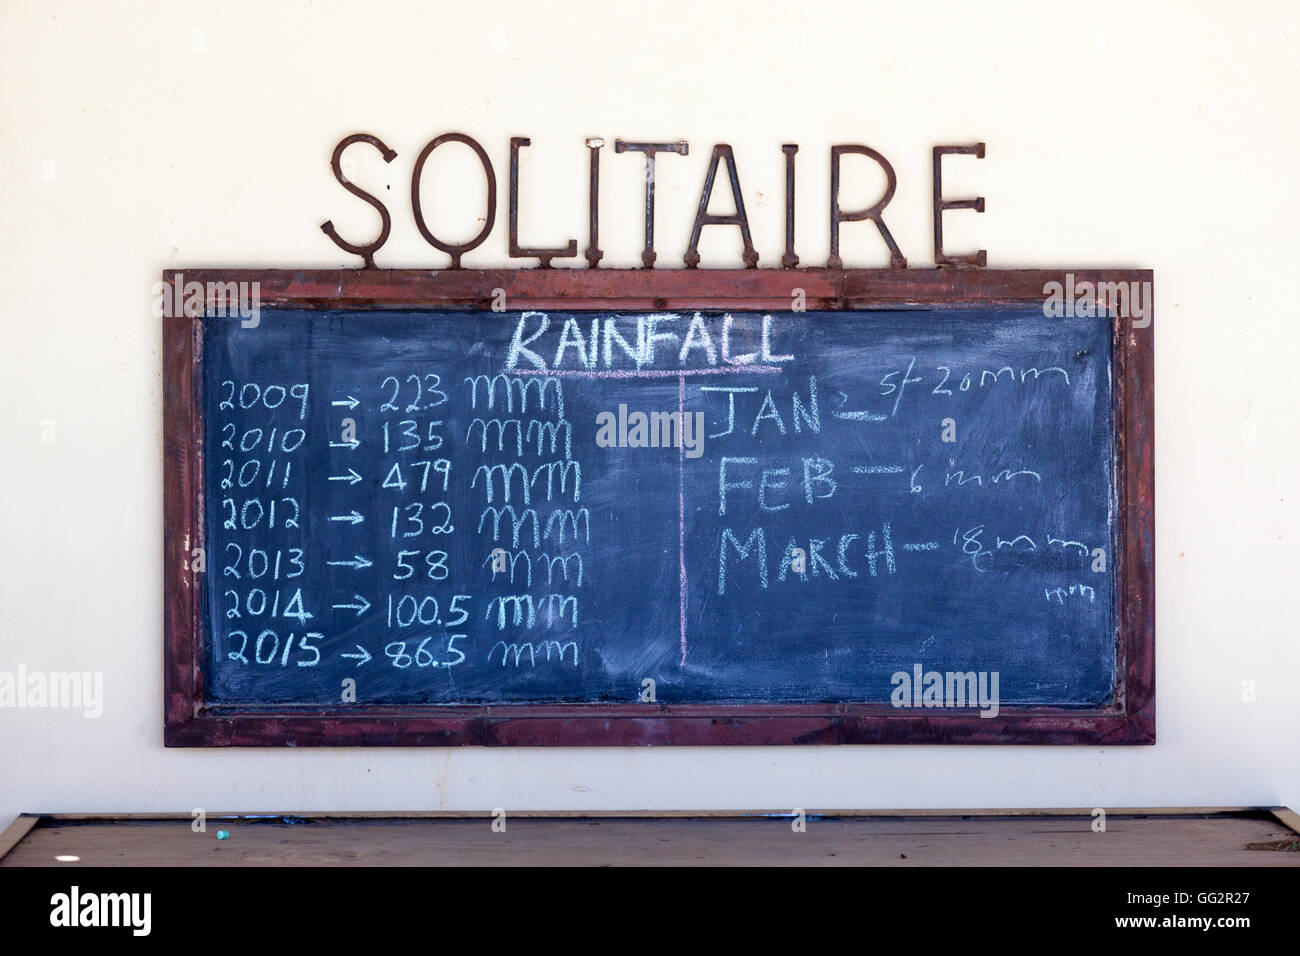 Namibia Solitaire rainfall measures - Stock Image